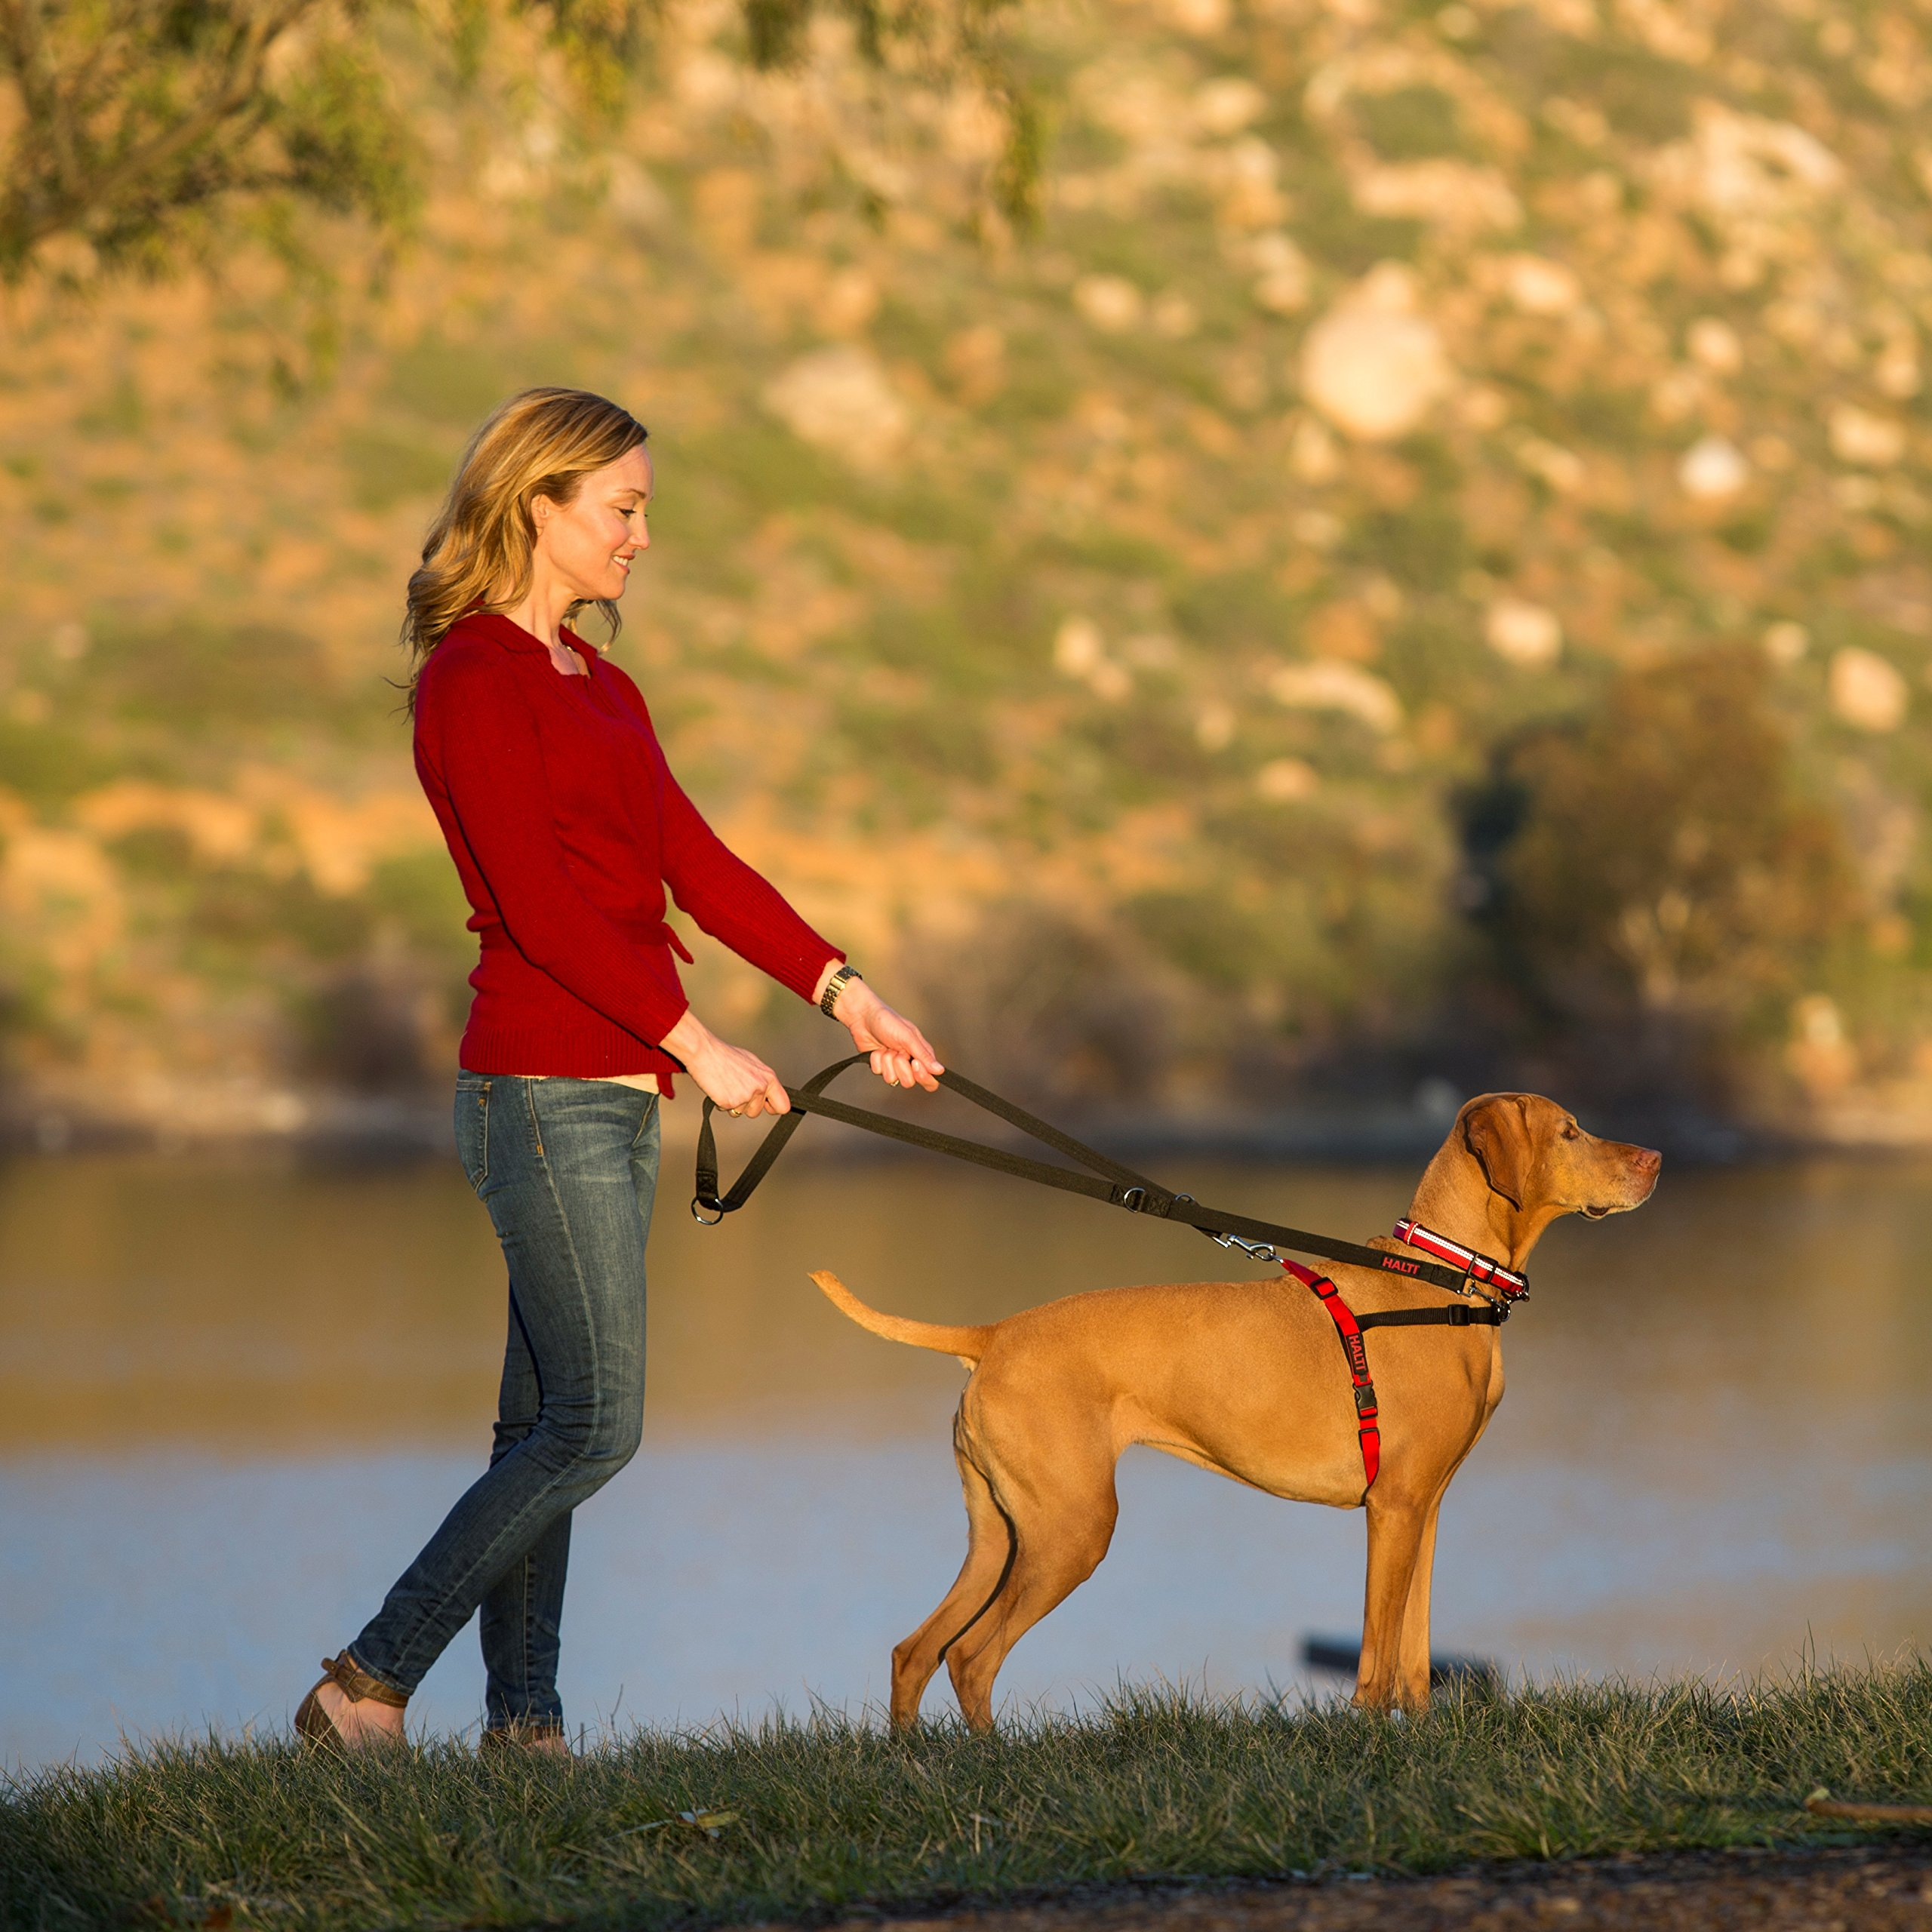 The Company of Animals - HALTI Training Harness - Durable and Adjustable - Comfortable Padded fit - Medium - Black & Red by The Company of Animals (Image #3)